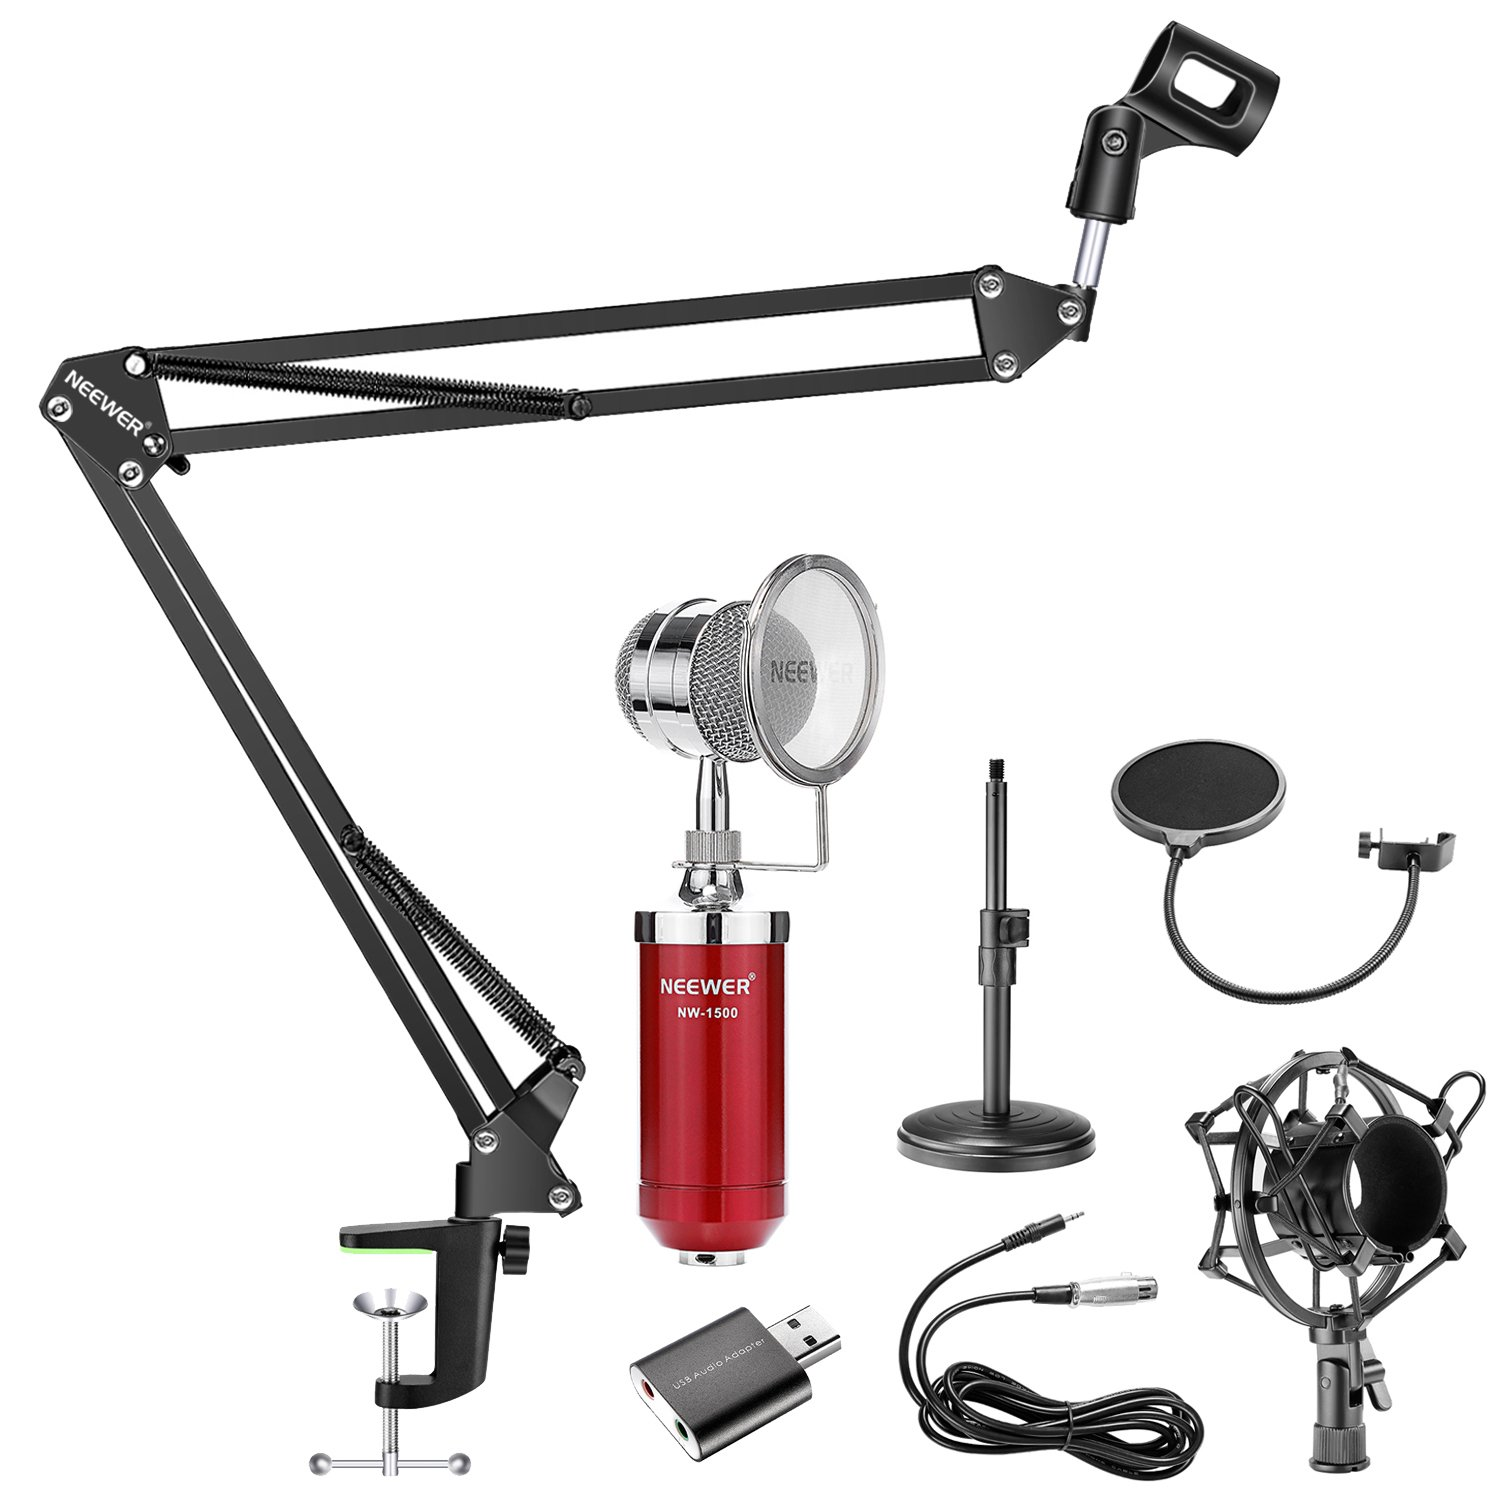 Neewer 5-in-1 Condenser Microphone and Accessory Kit: NW-1500 Desktop Condenser Microphone (Red), NW-35 Mic Suspension Boom Scissor Arm Stand,NW(B-3) Pop Filter Mask Shield and USB 2.0 Sound Adapter 90091695